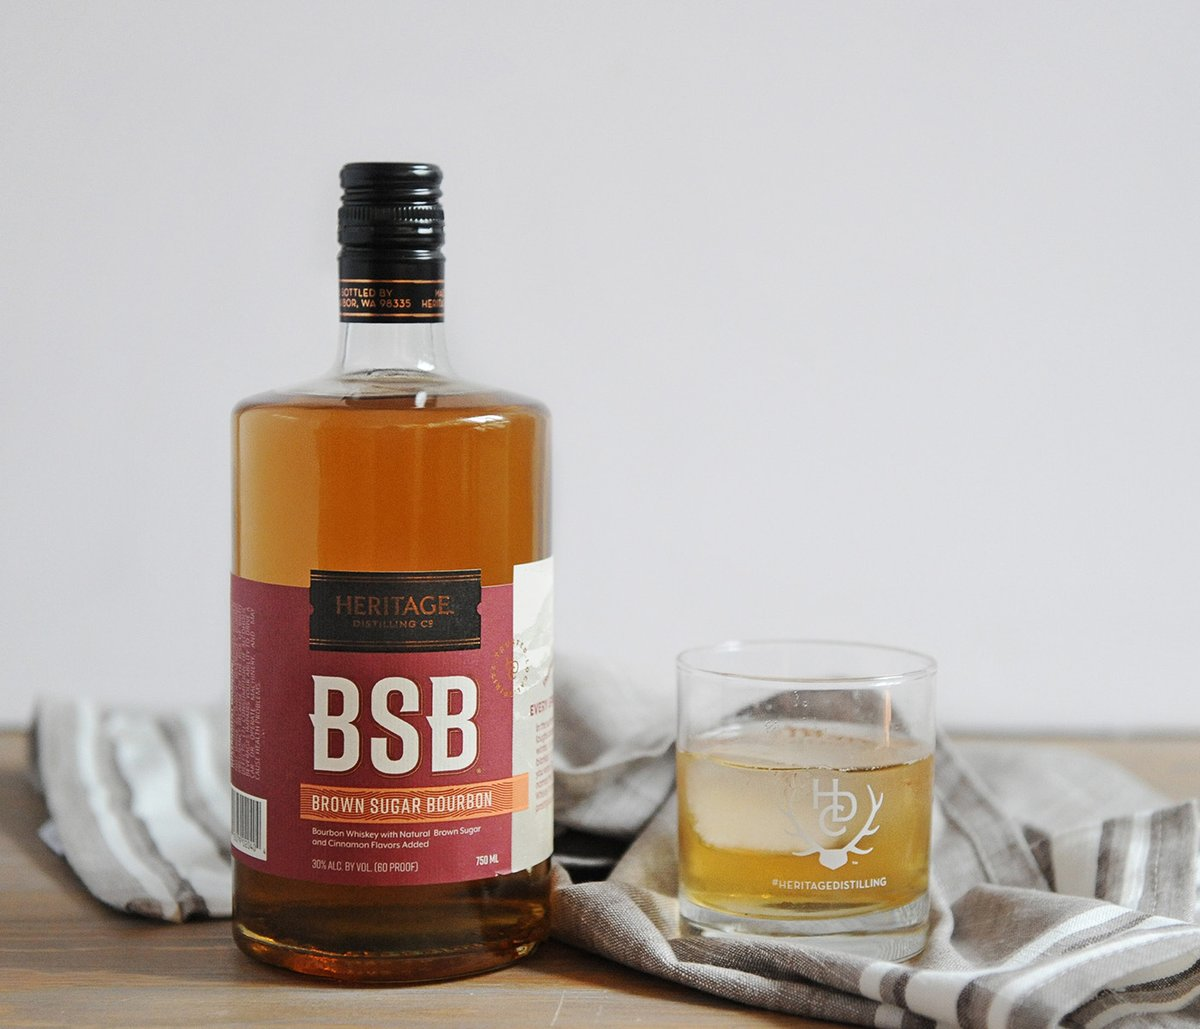 Heritage-Distilling-Co.'s-High-Altitude-Brown-Sugar-Bourbon